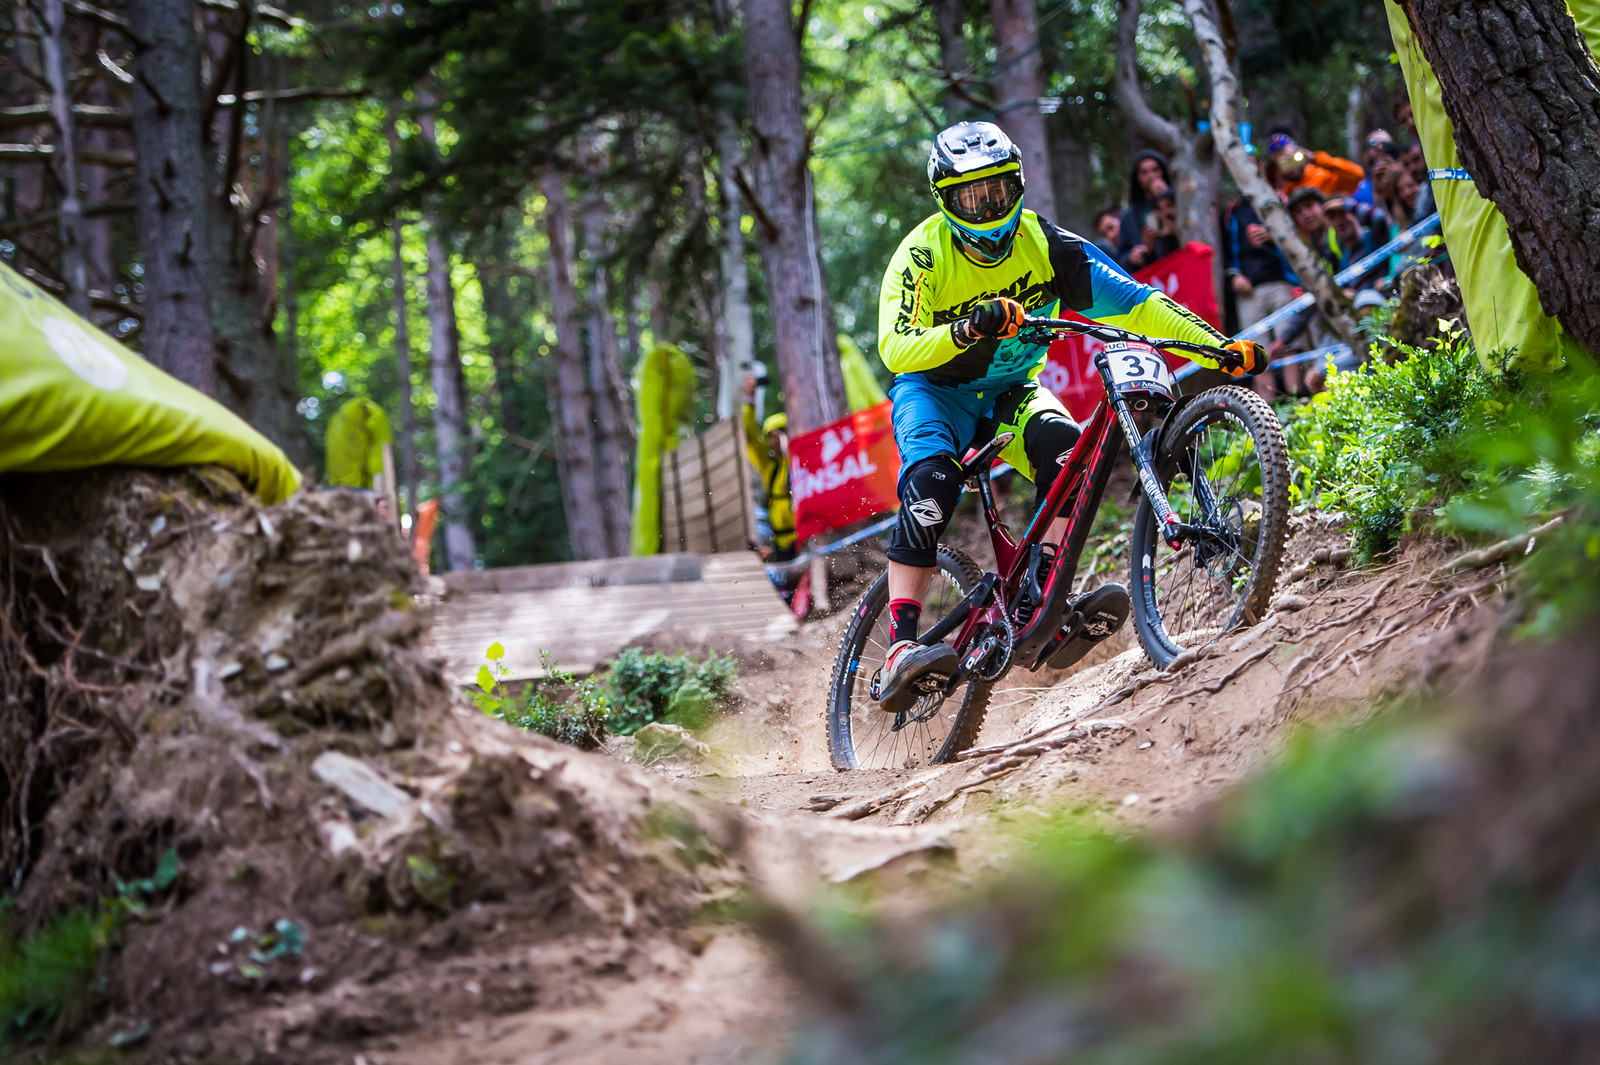 Blenki Swapping Lines in Gully for Finals - iceman2058 - Mountain Biking Pictures - Vital MTB